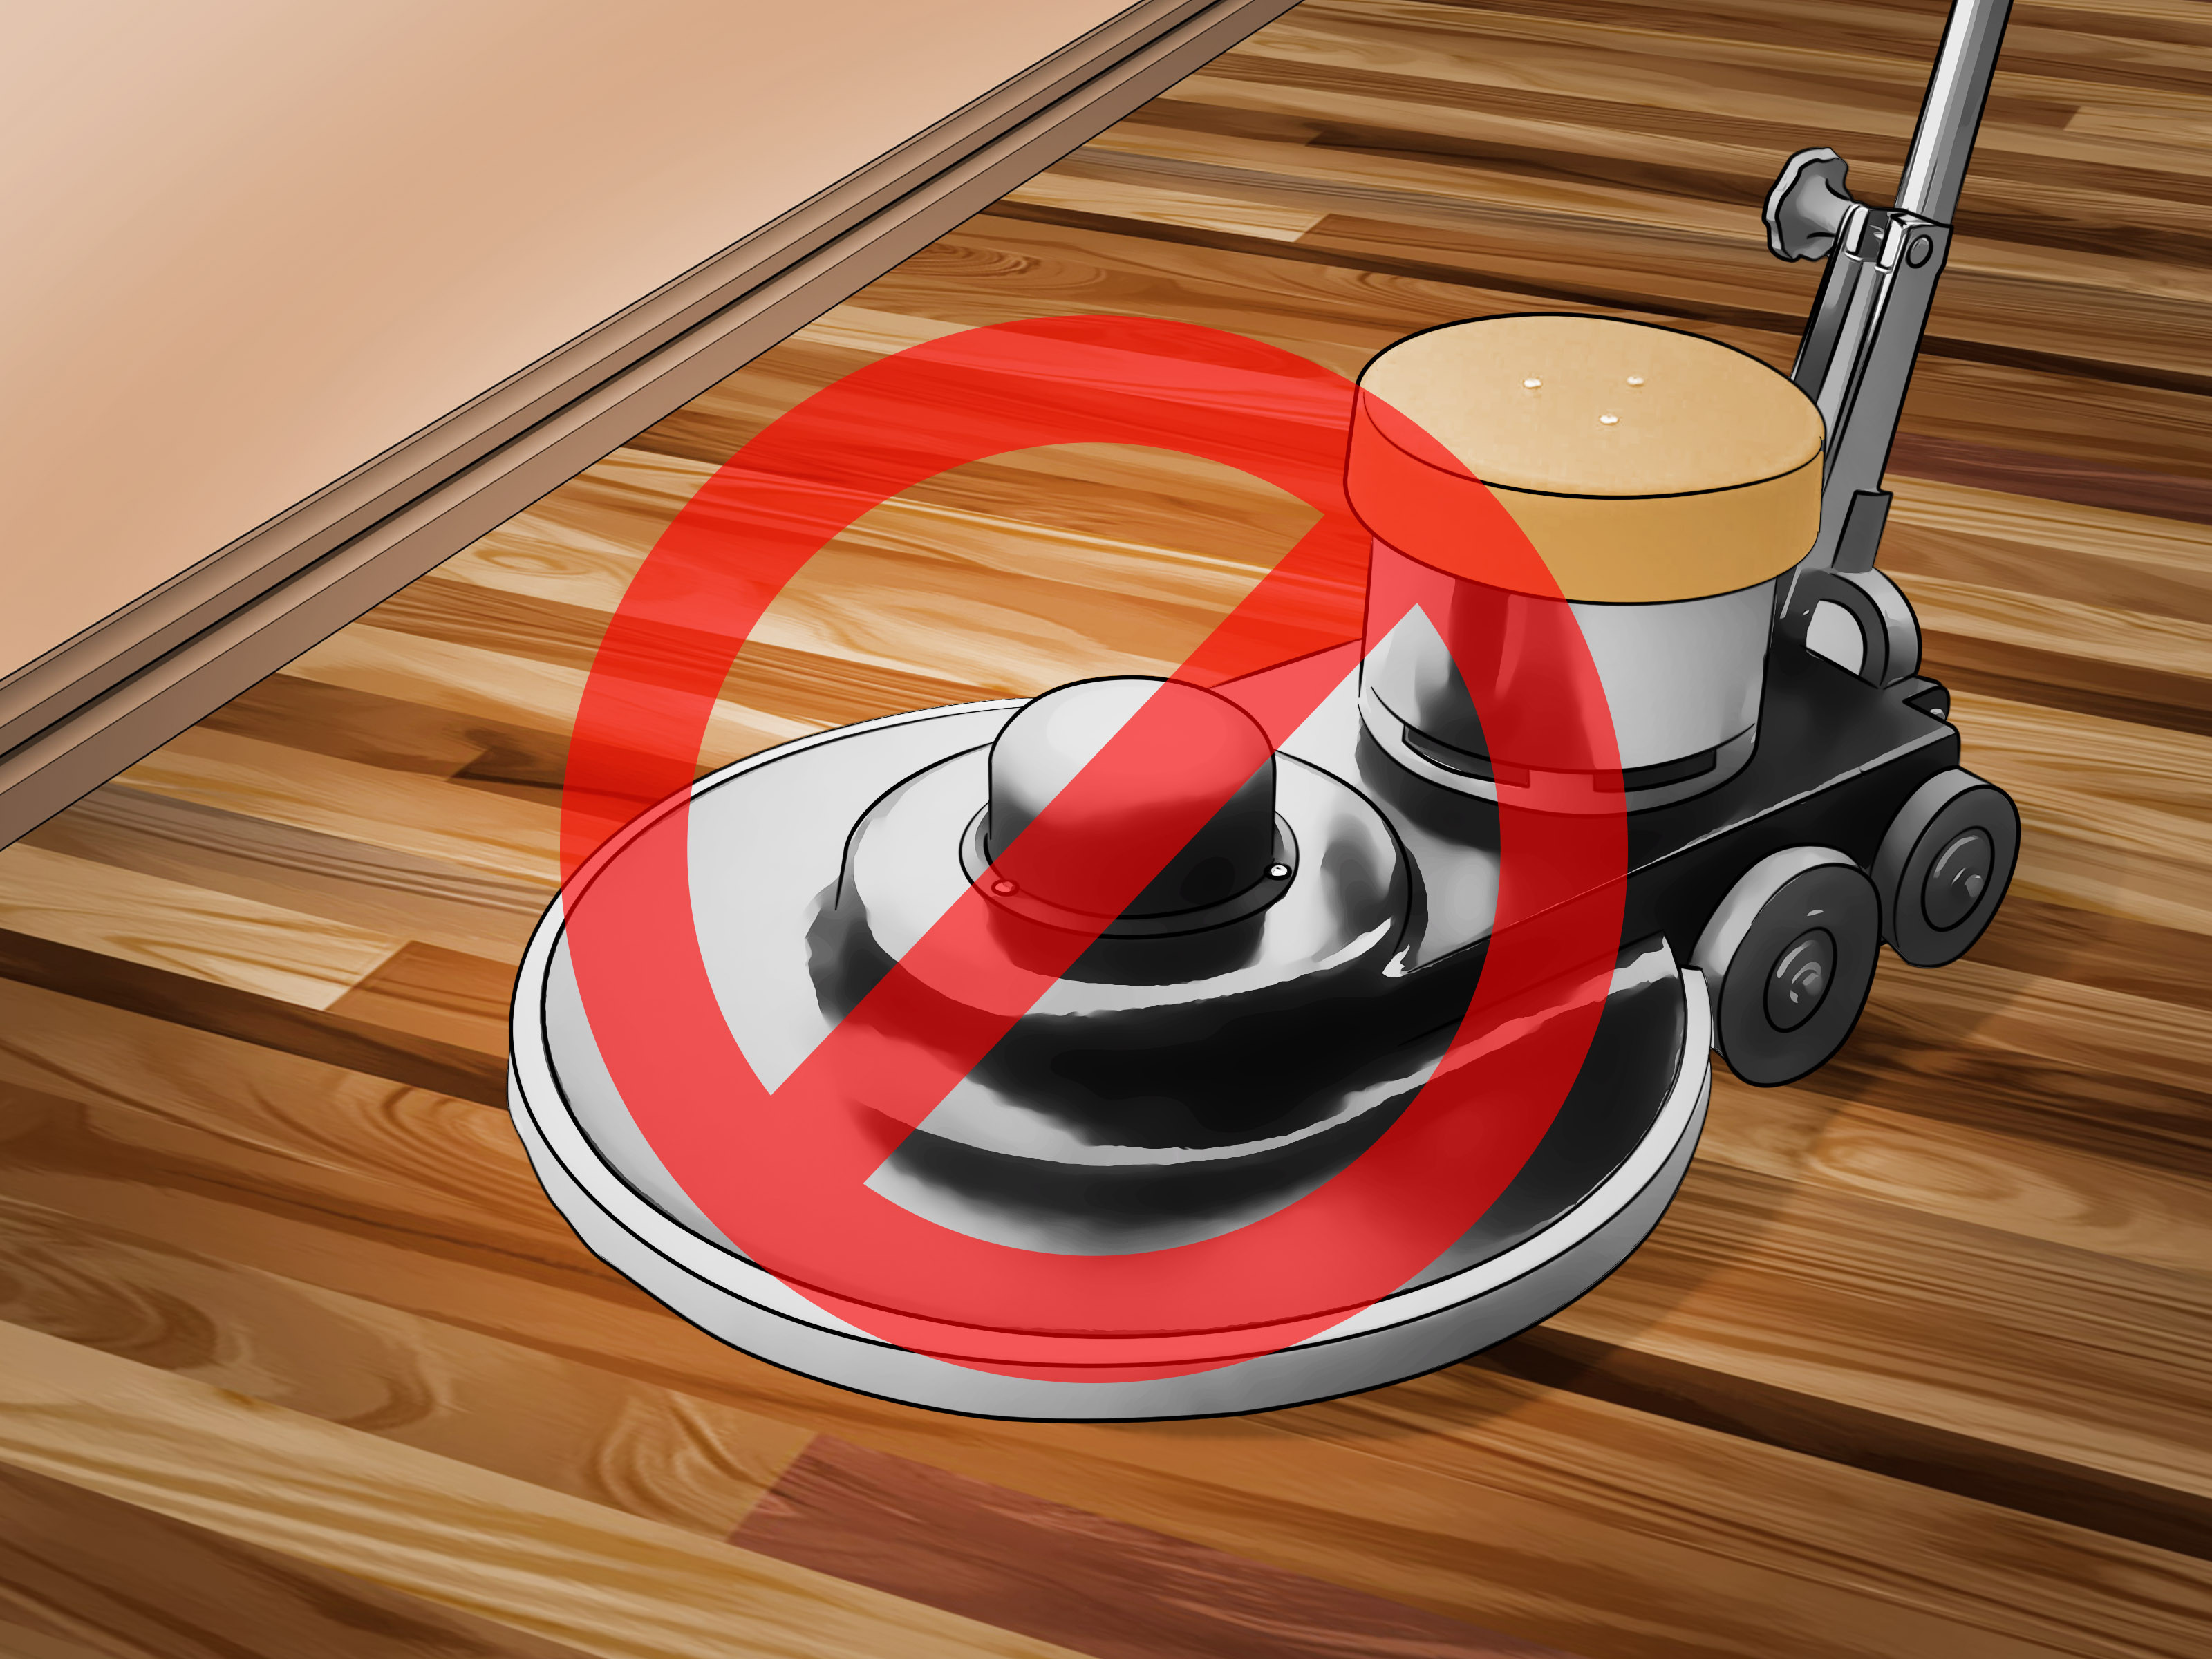 types of hardwood floor finishes of 4 ways to clean polyurethane wood floors wikihow for clean polyurethane wood floors step 15